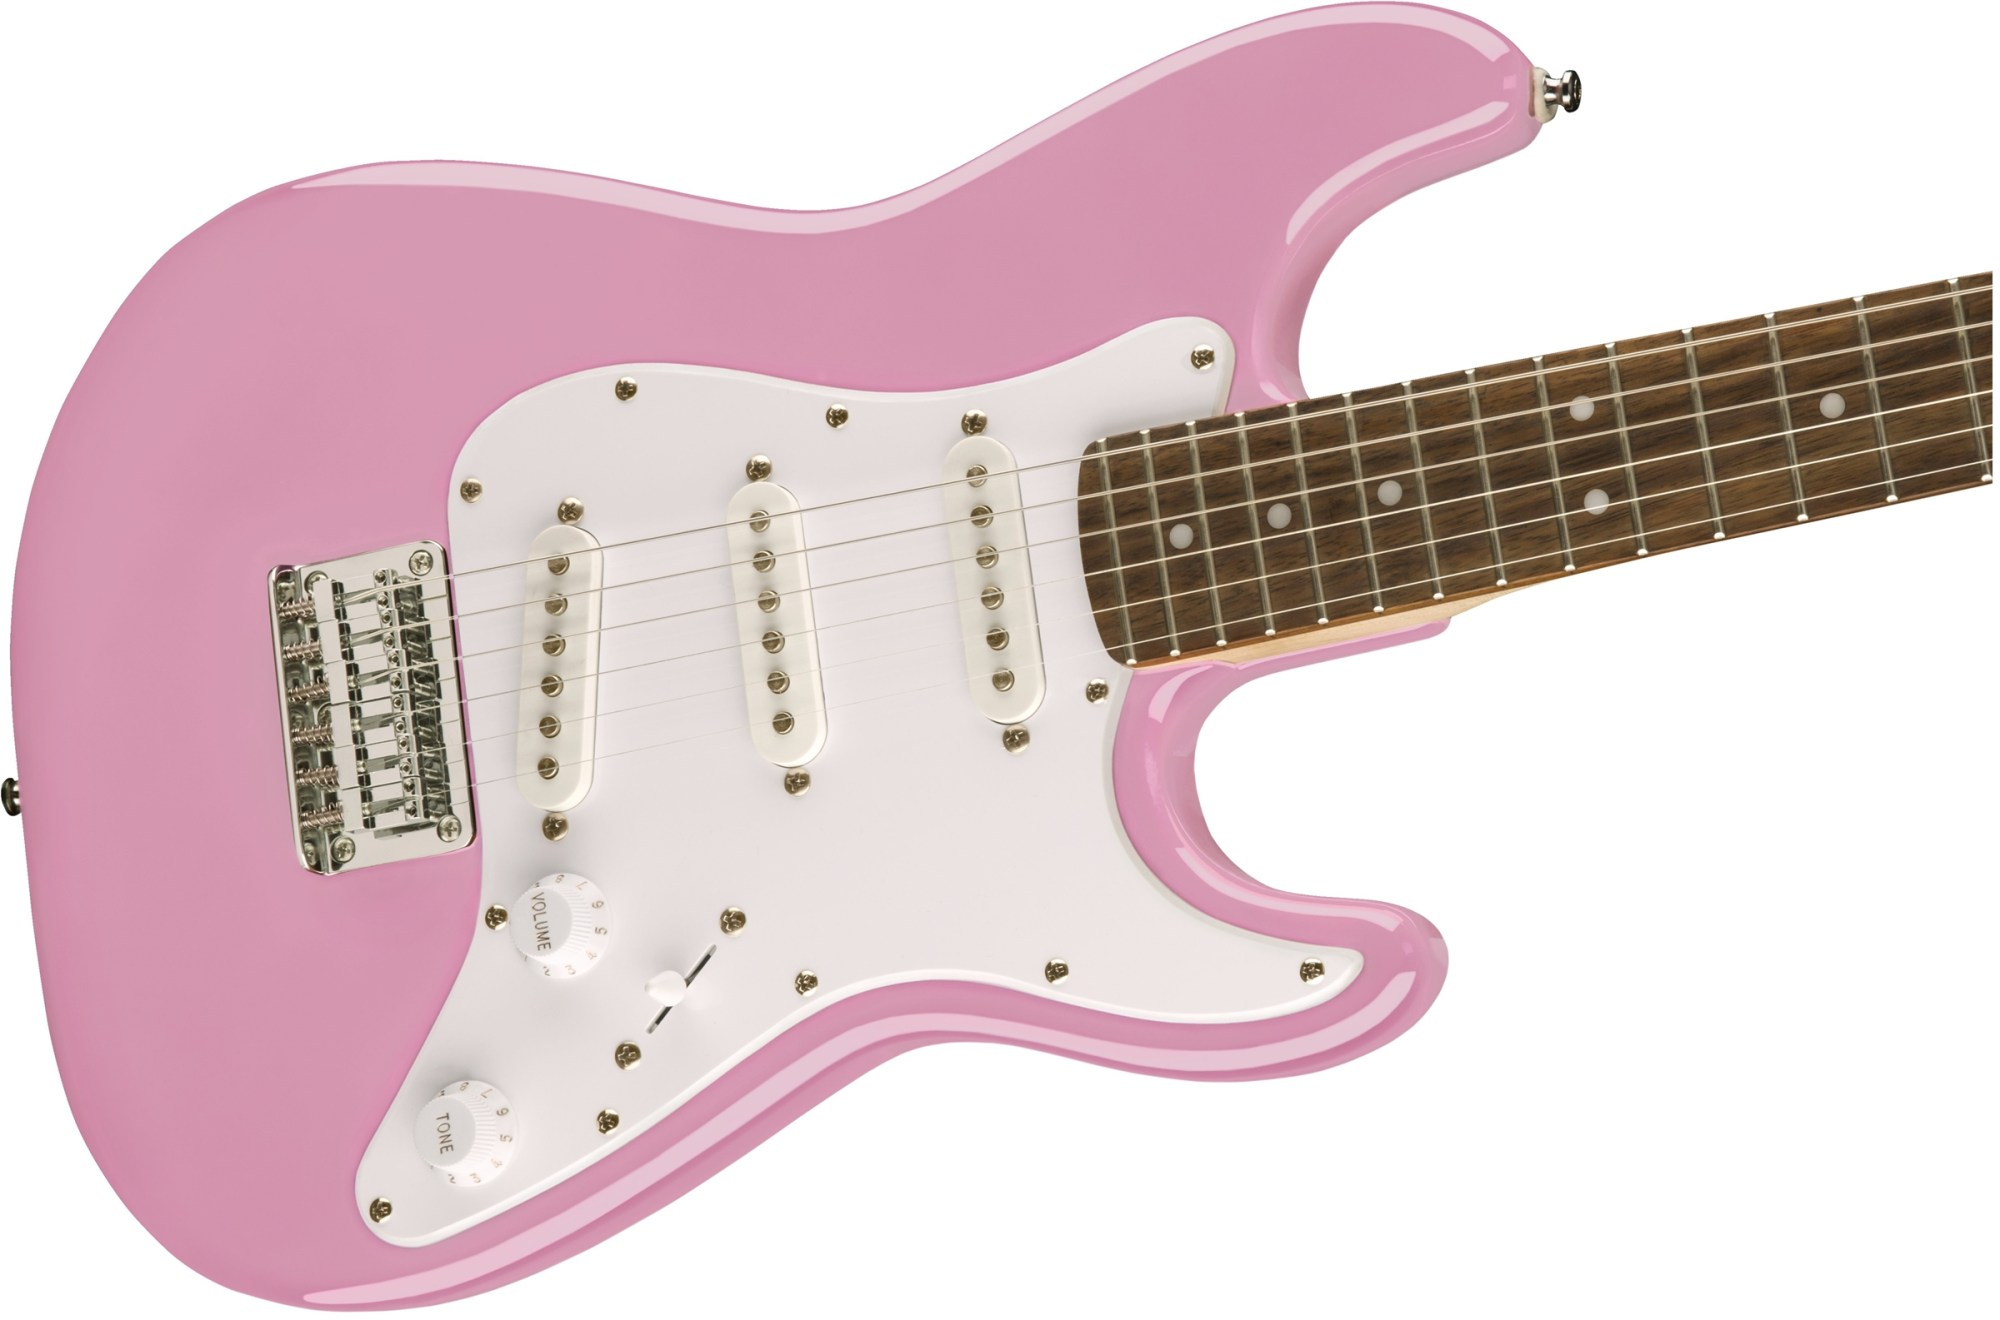 hight resolution of mini squire jack wiring home wiring diagram fender squier mini jack wiring